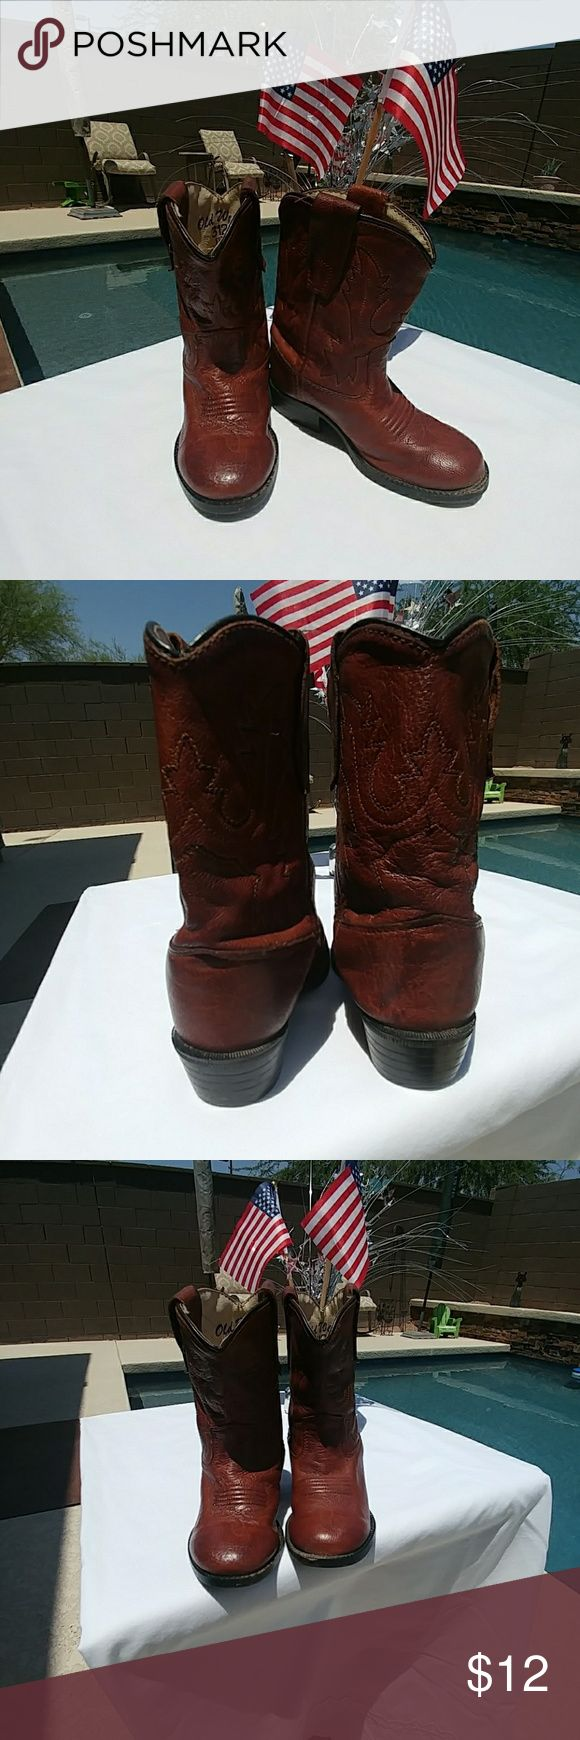 Toddler Cowboy Boots Old West Leather, sticking details  cowboy boot. Natural wear on inside lining,  outside is in excellent condition Old West Shoes Boots